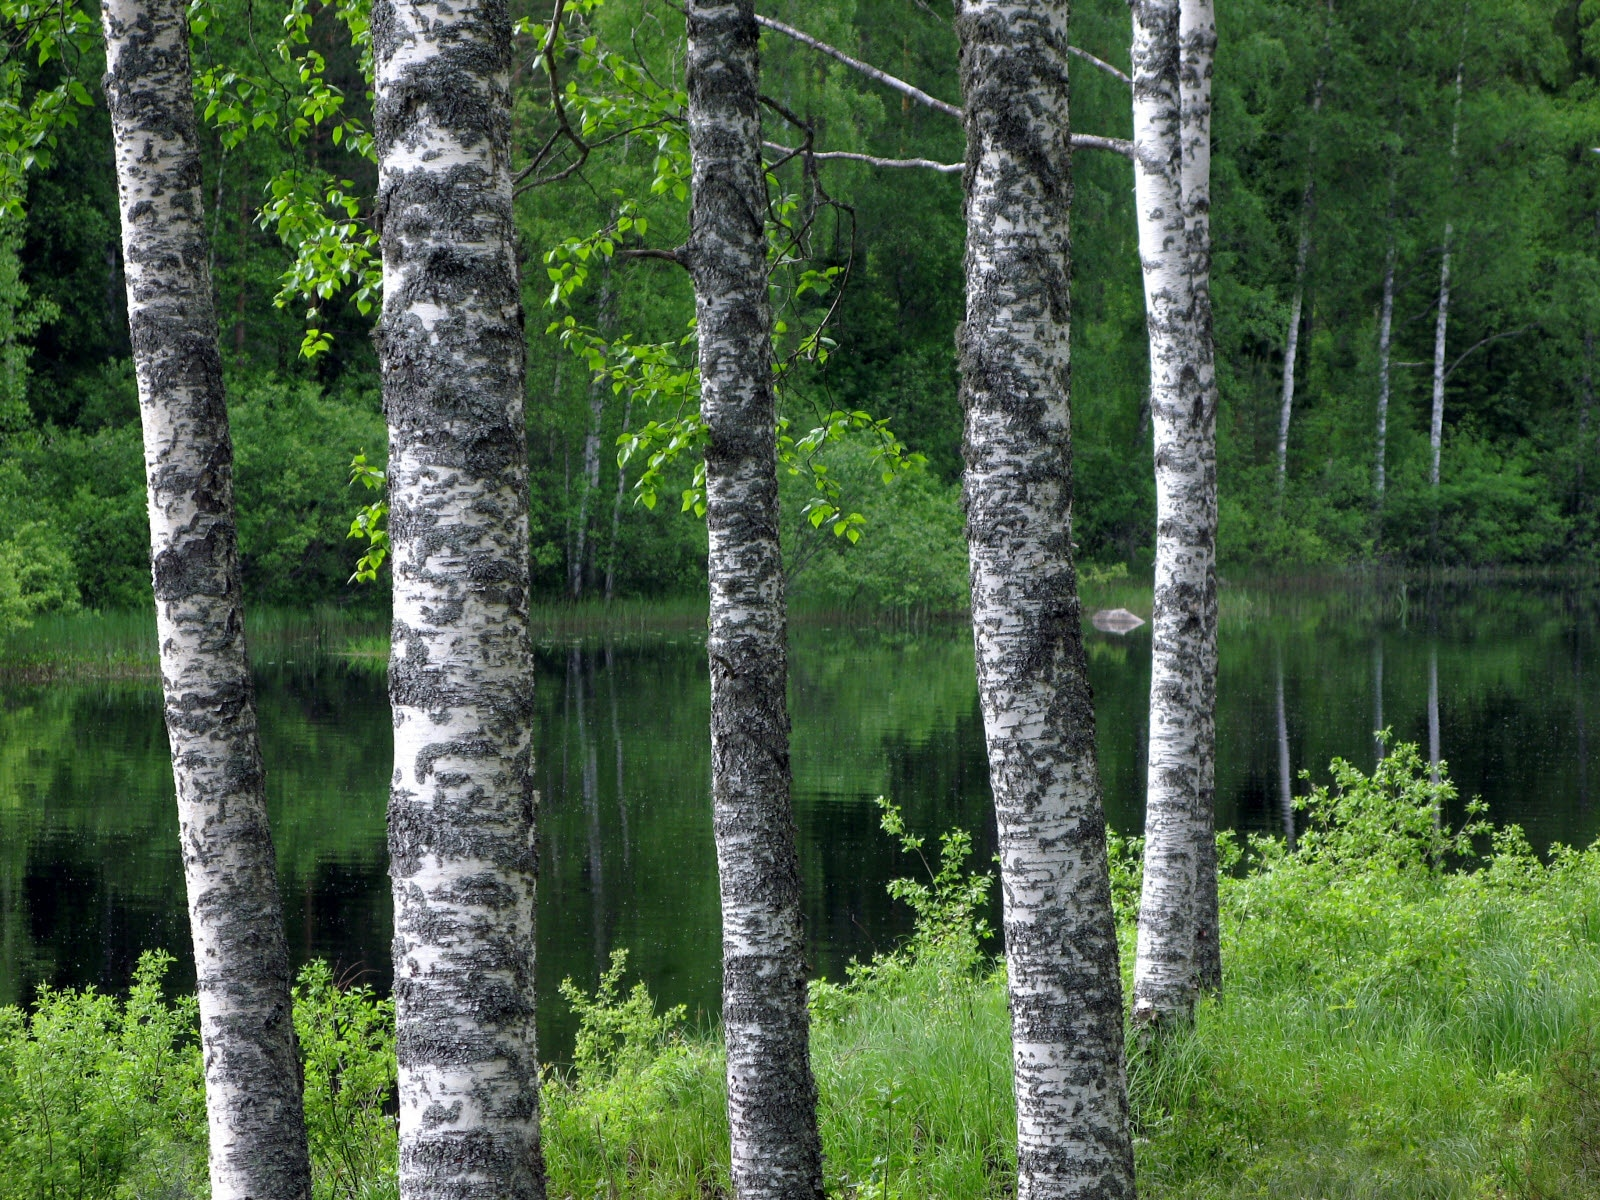 Birch tree, Lakeland, Kuopio